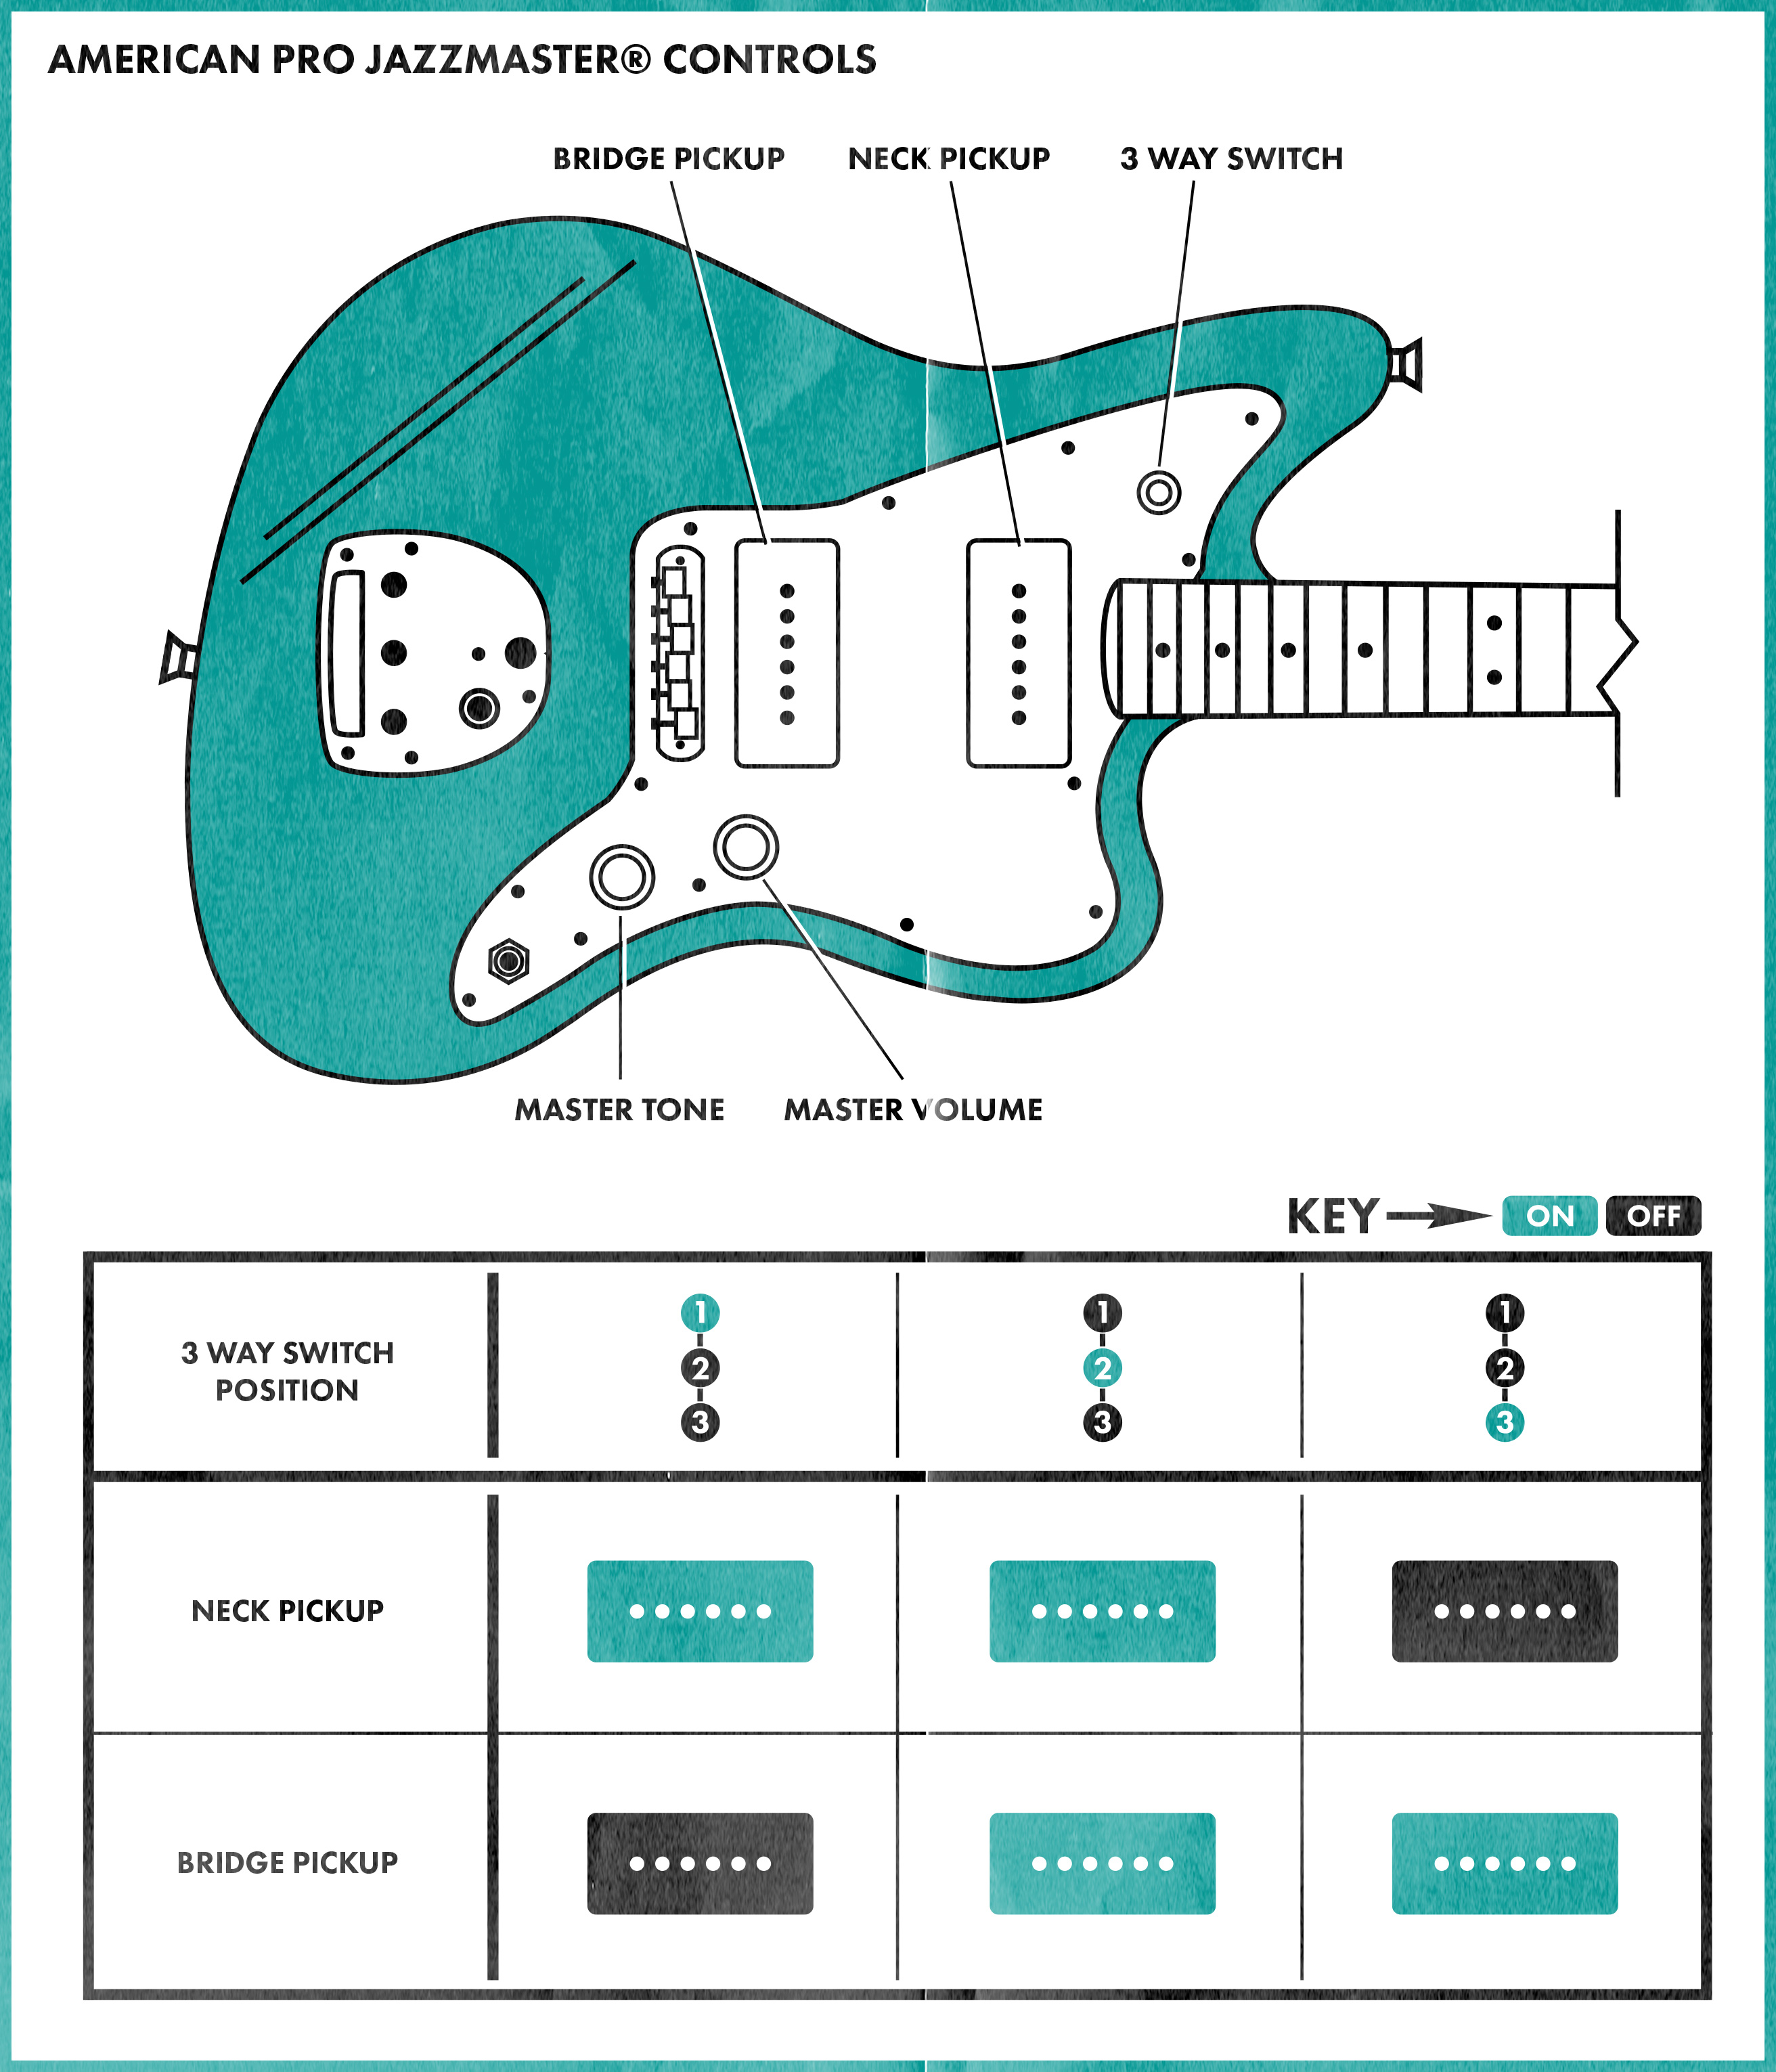 Admirable Fender Guitar Wiring Diagrams On Wiring Diagram Fender Jazzmaster Wiring Cloud Waroletkolfr09Org